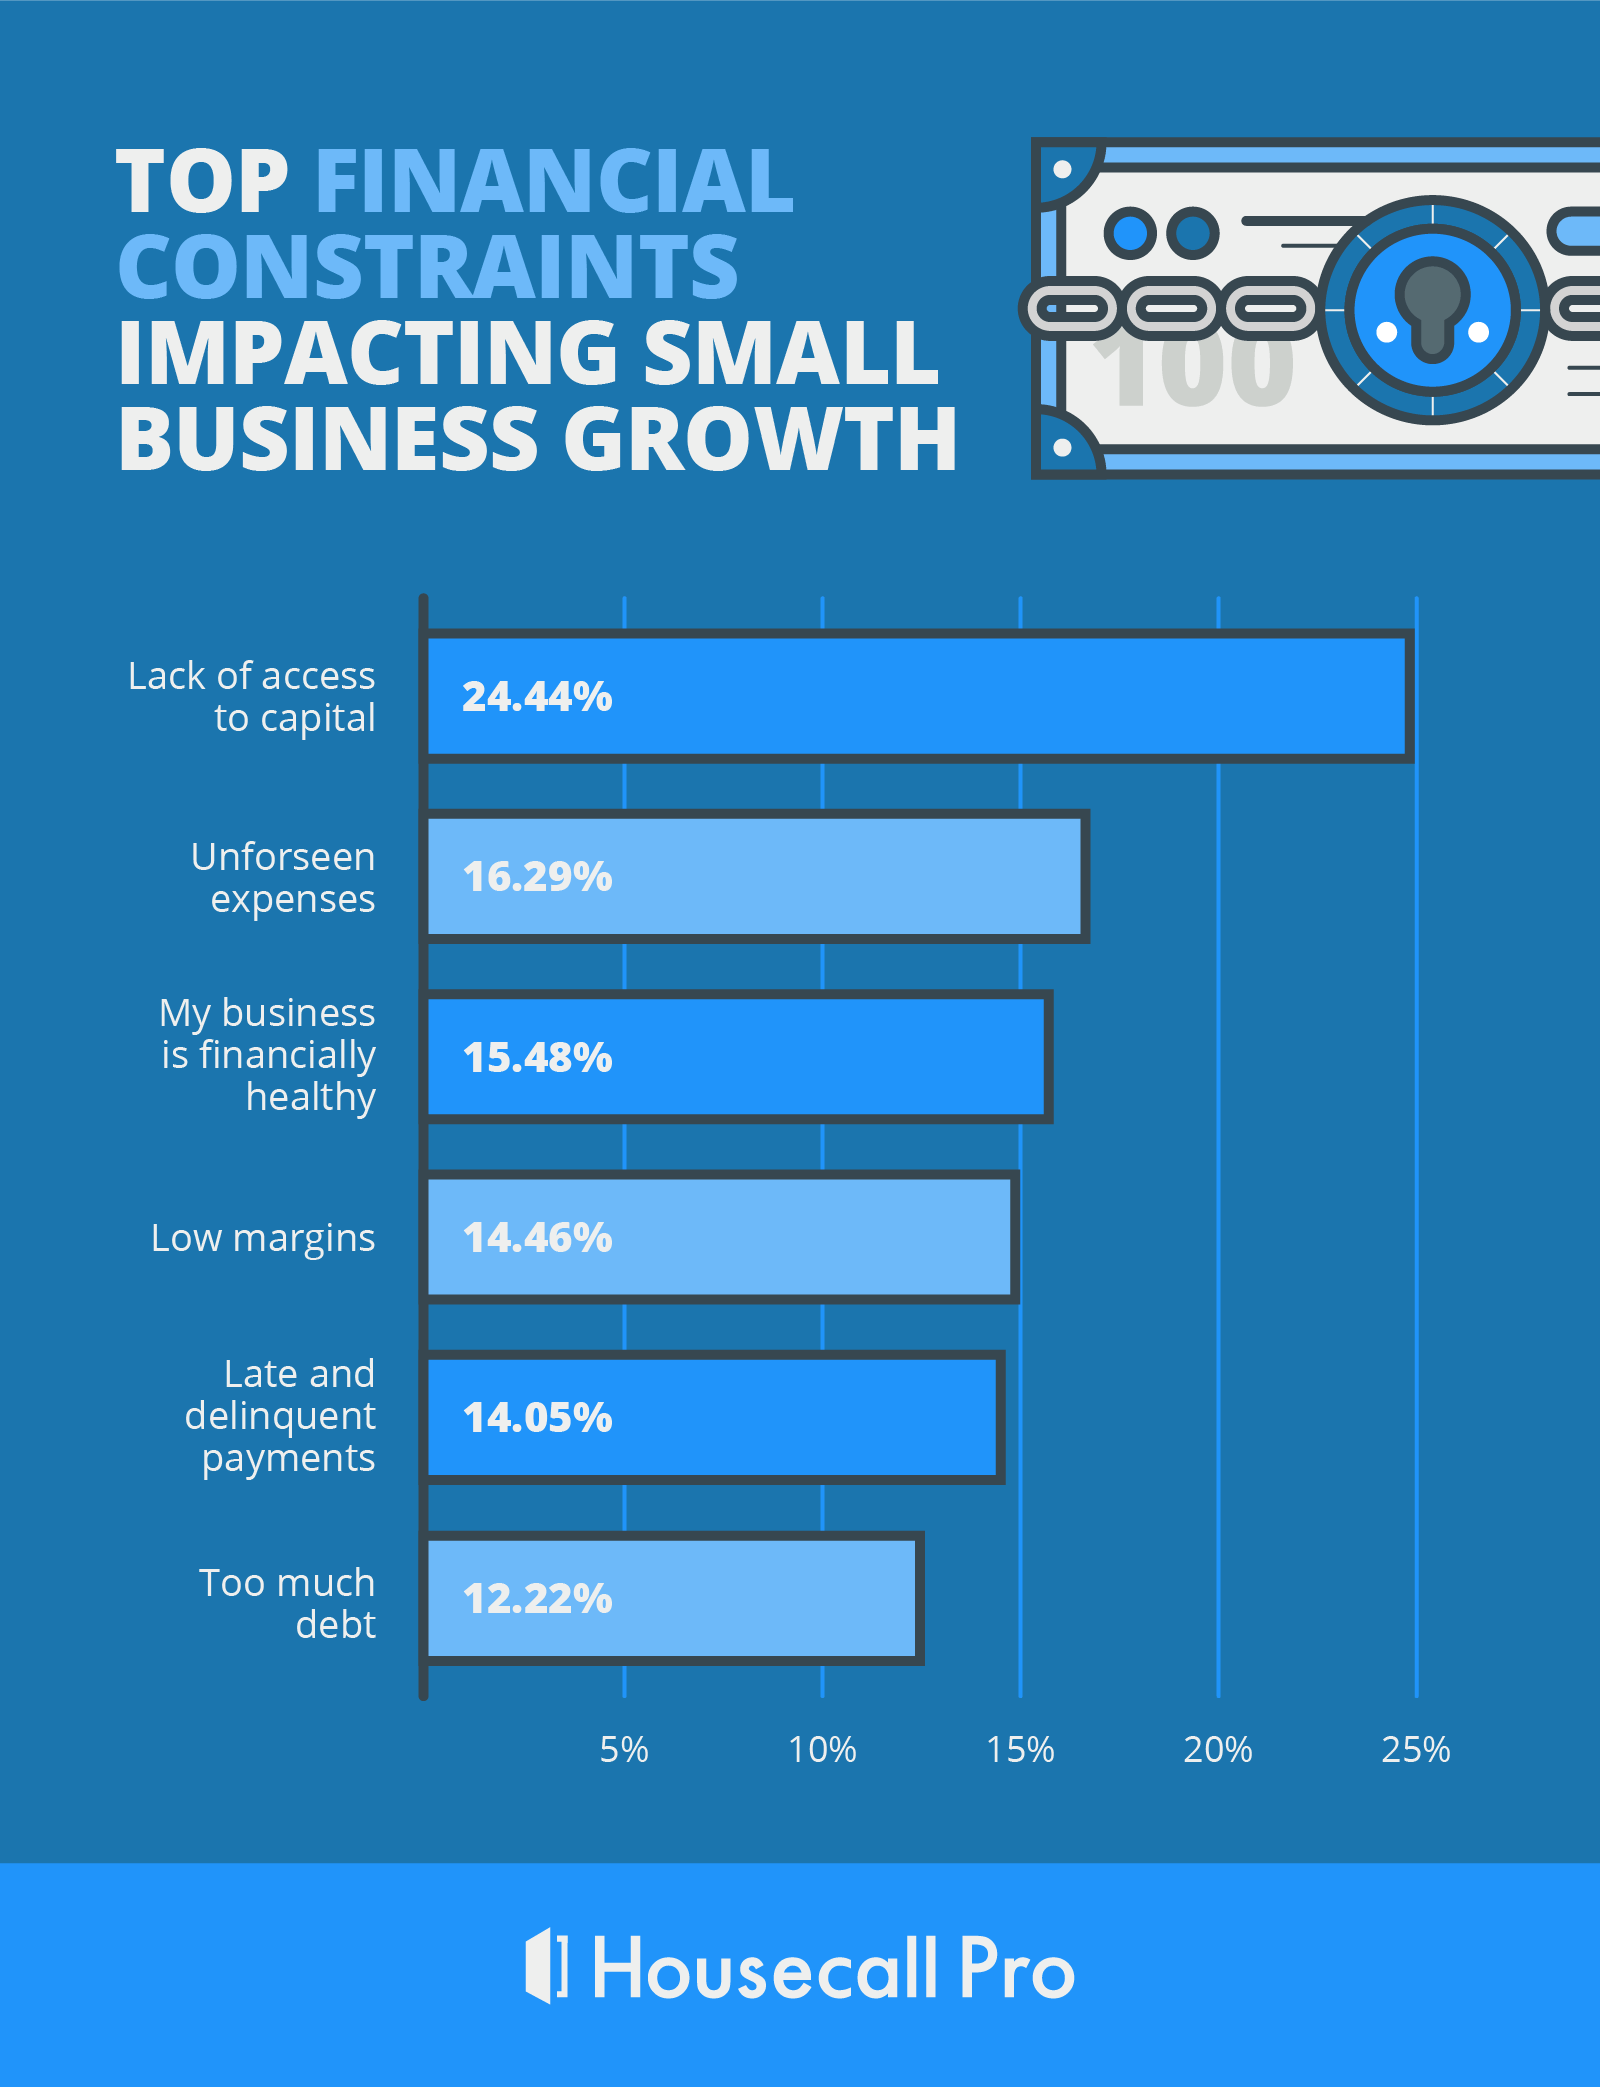 the financial challenges most reported by small business owners